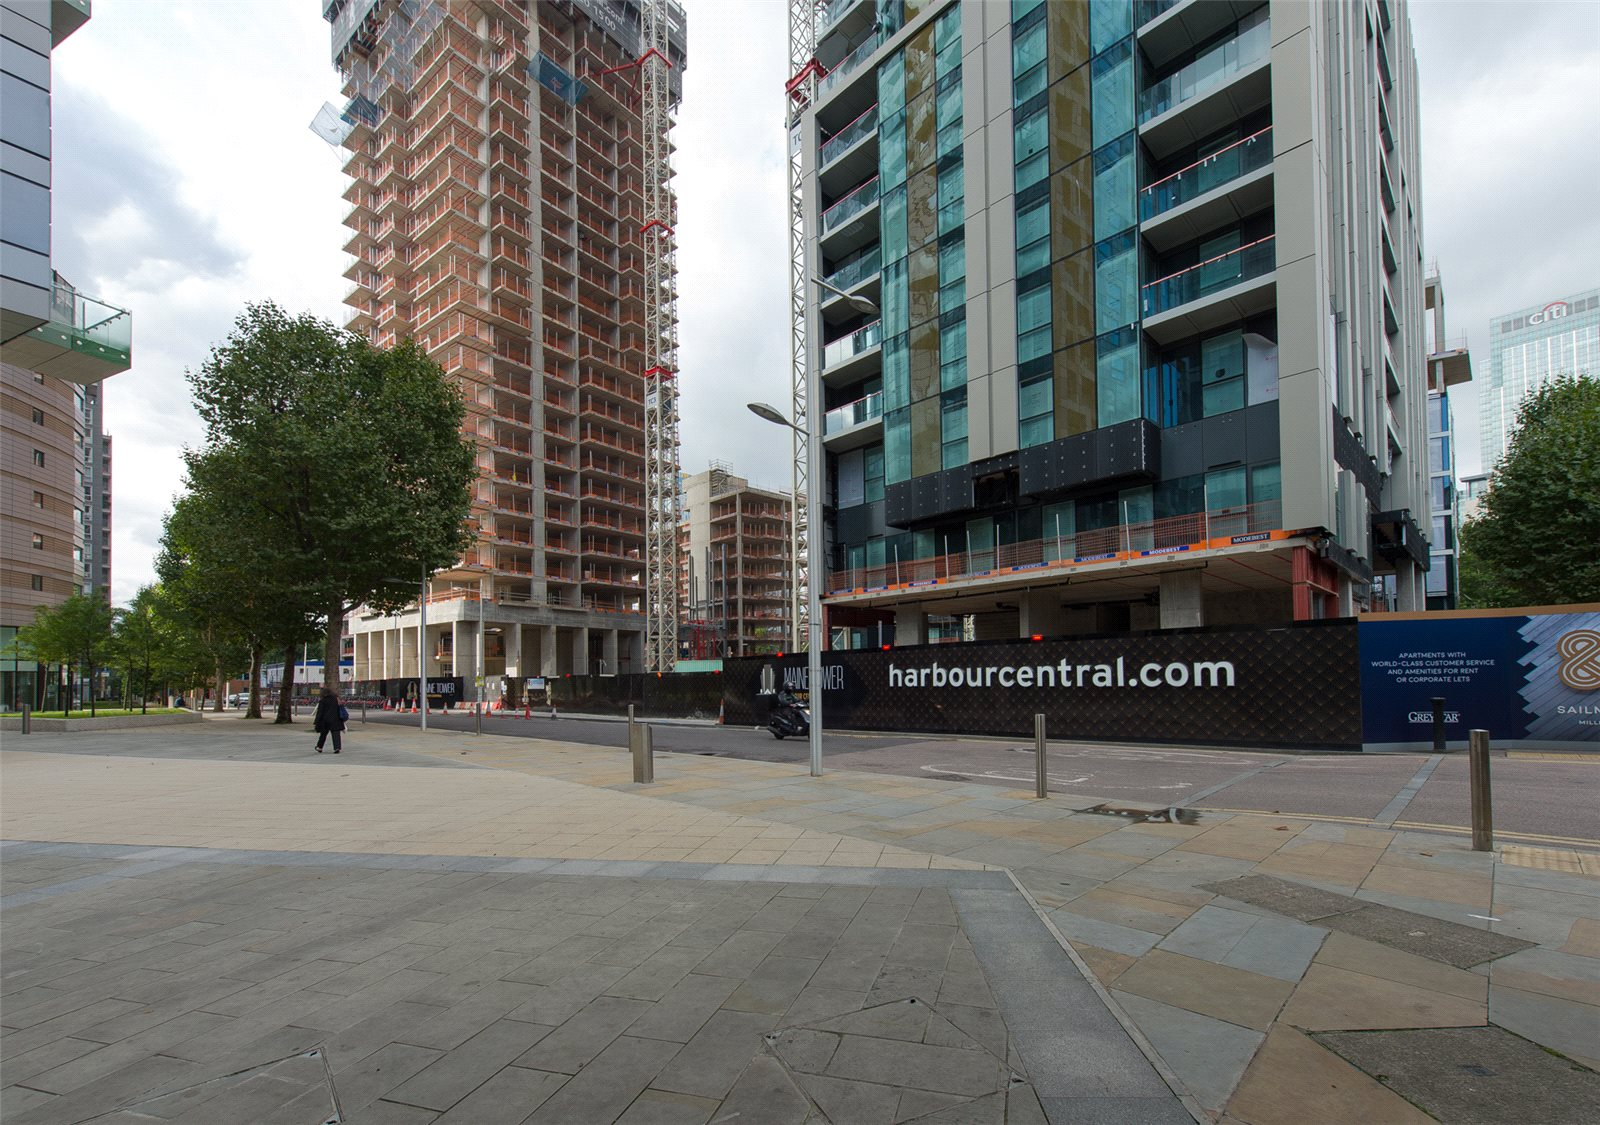 1 Bedroom Flat For Sale In Maine Tower Harbour Central Canary Wharf E14 London